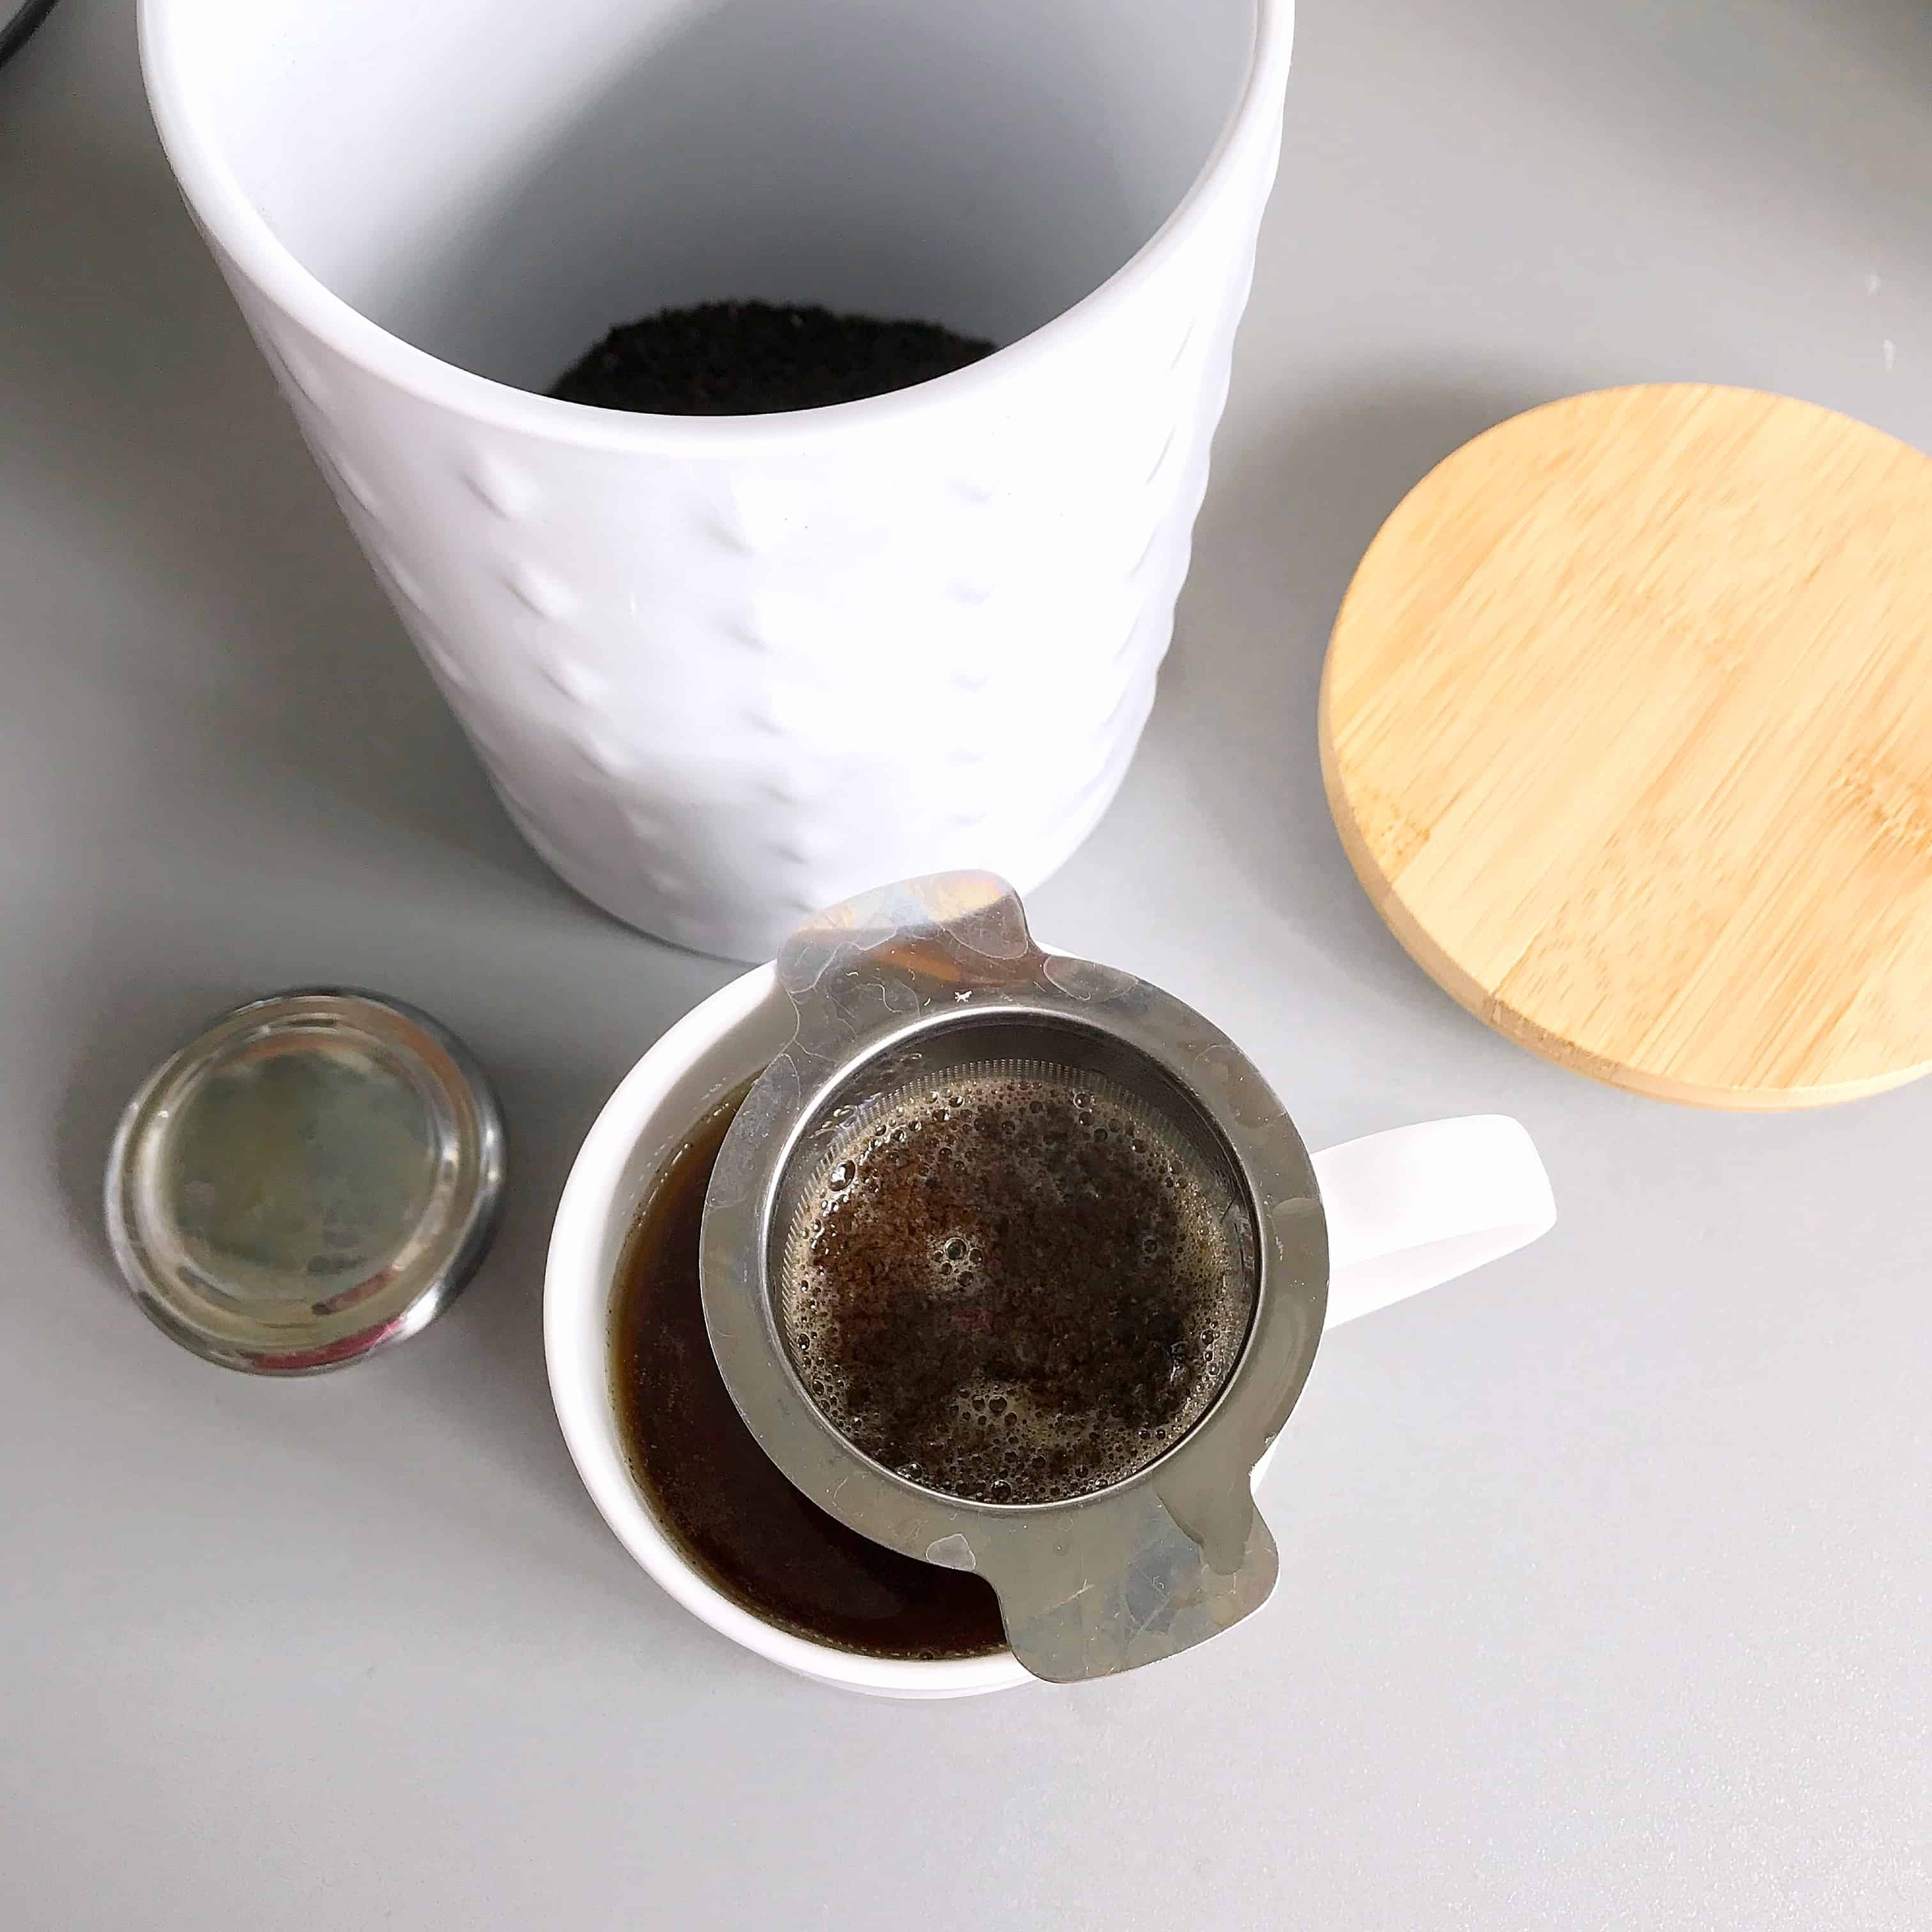 Loose leaf tea and a strainer are easy swaps you can make to reduce waste